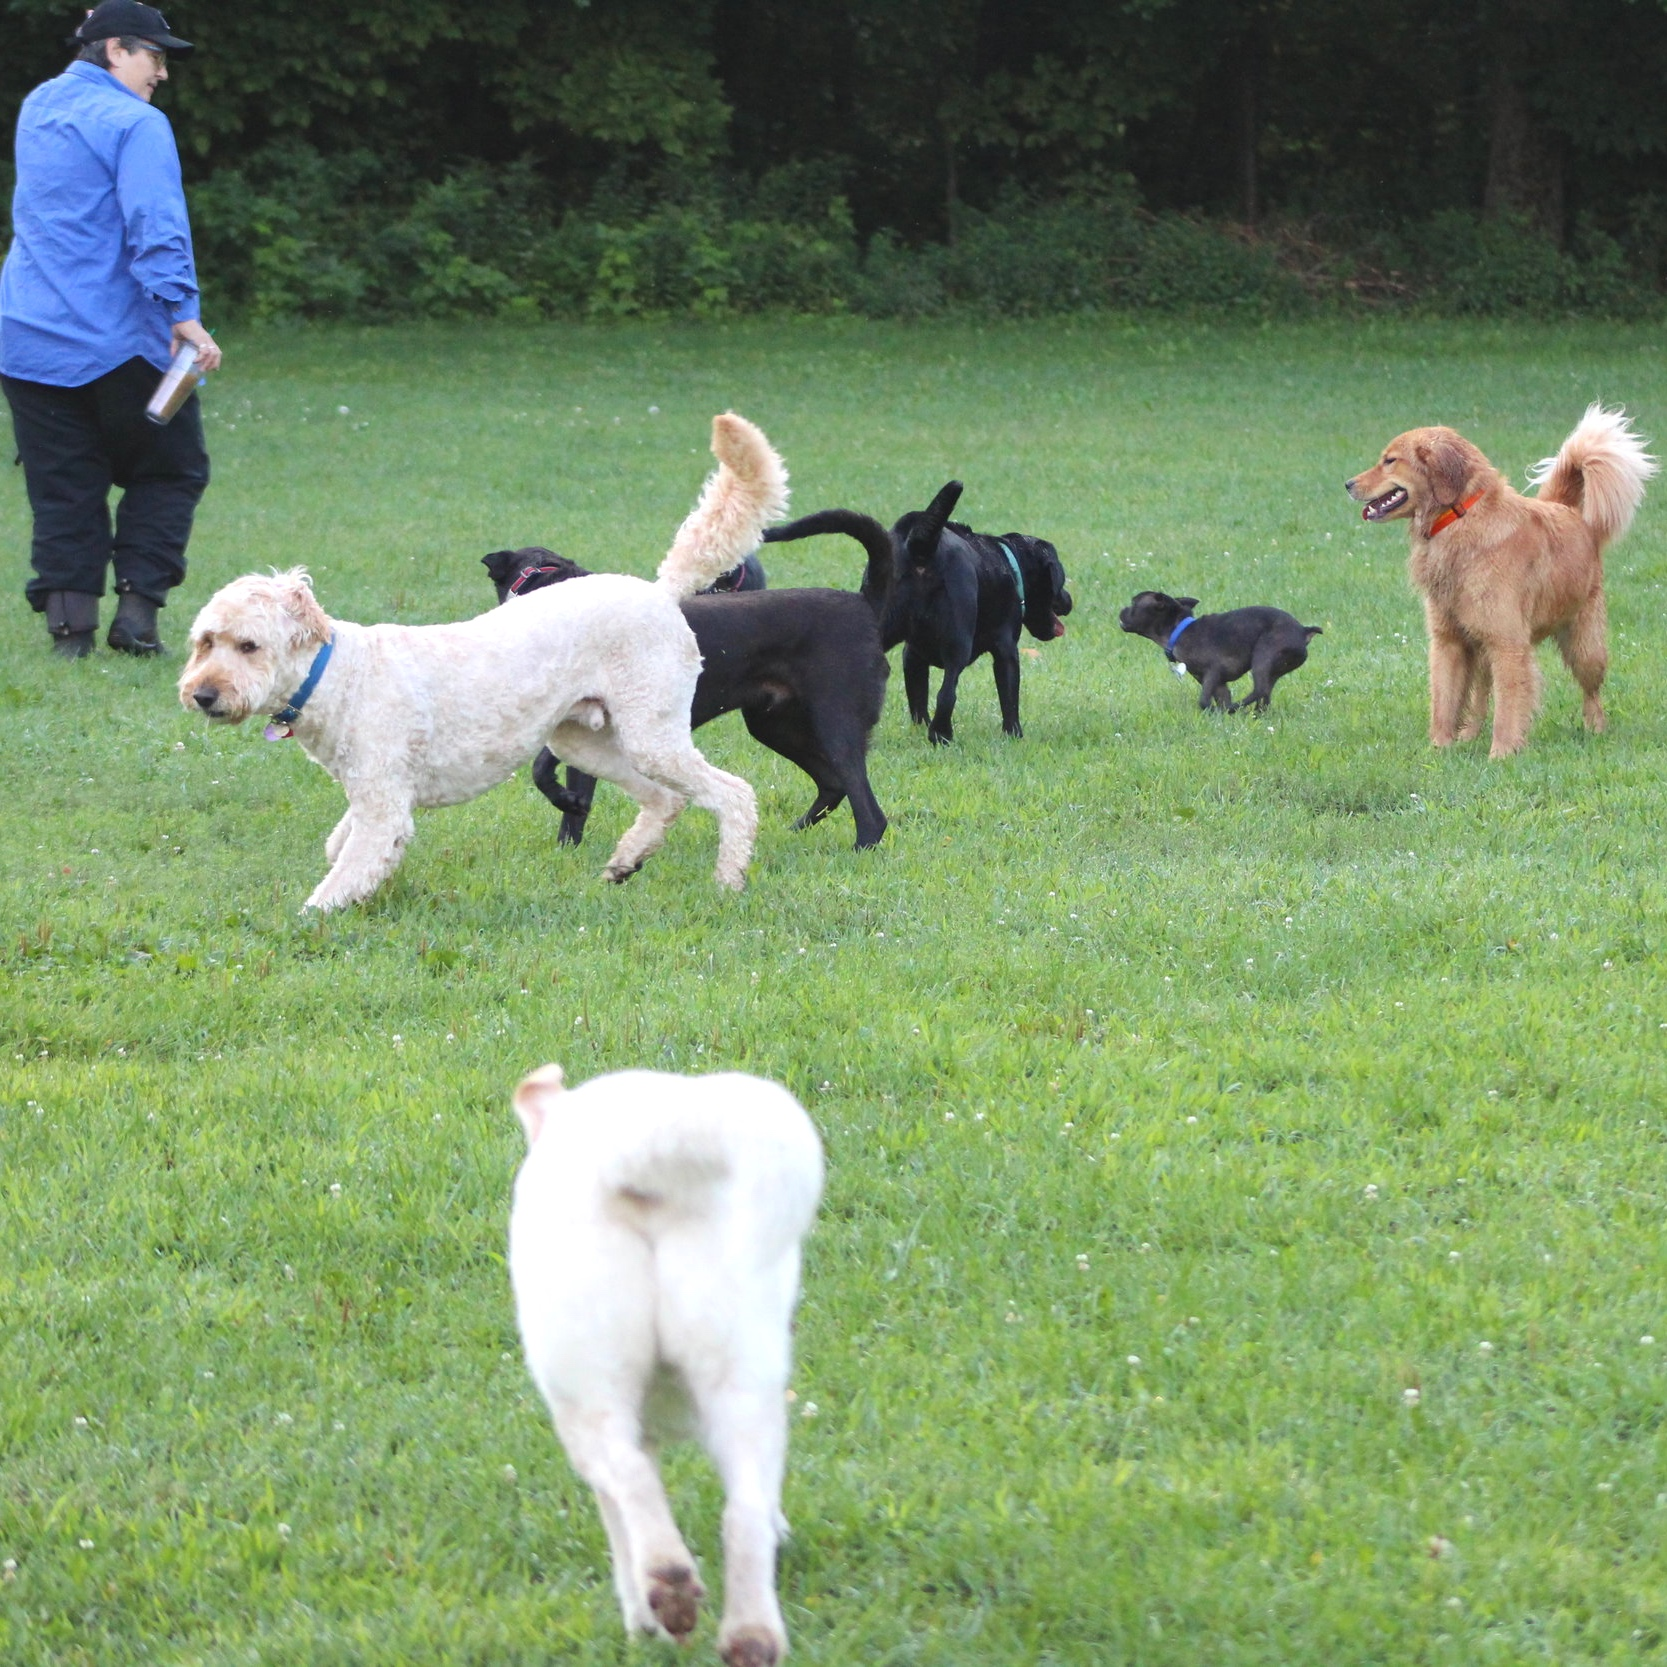 Off-Leash Skills & Play Behavior - Off-leash play in wide open areas is essential to a dog's well being. Learn how to encourage safe play, distinguish rough housing from potential aggression, and gain confidence in giving your dog freedom.